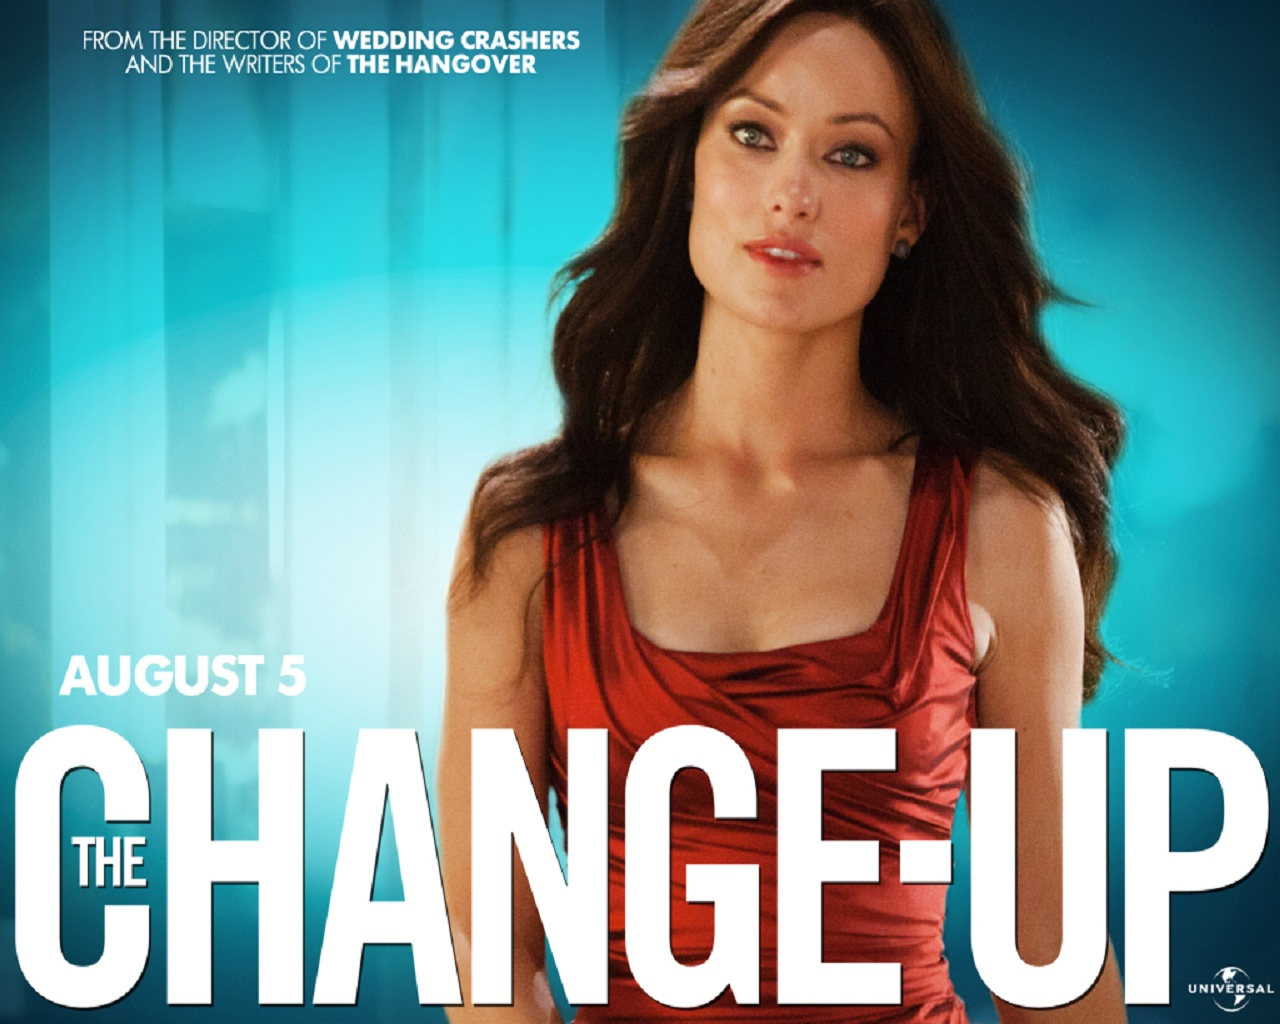 http://2.bp.blogspot.com/-yD8RkkdhDJg/TkGVYyfPvPI/AAAAAAAAElY/zAUmXjJURvQ/s1600/Olivia_Wilde_in_The_Change-Up_Wallpaper_5_800.jpg